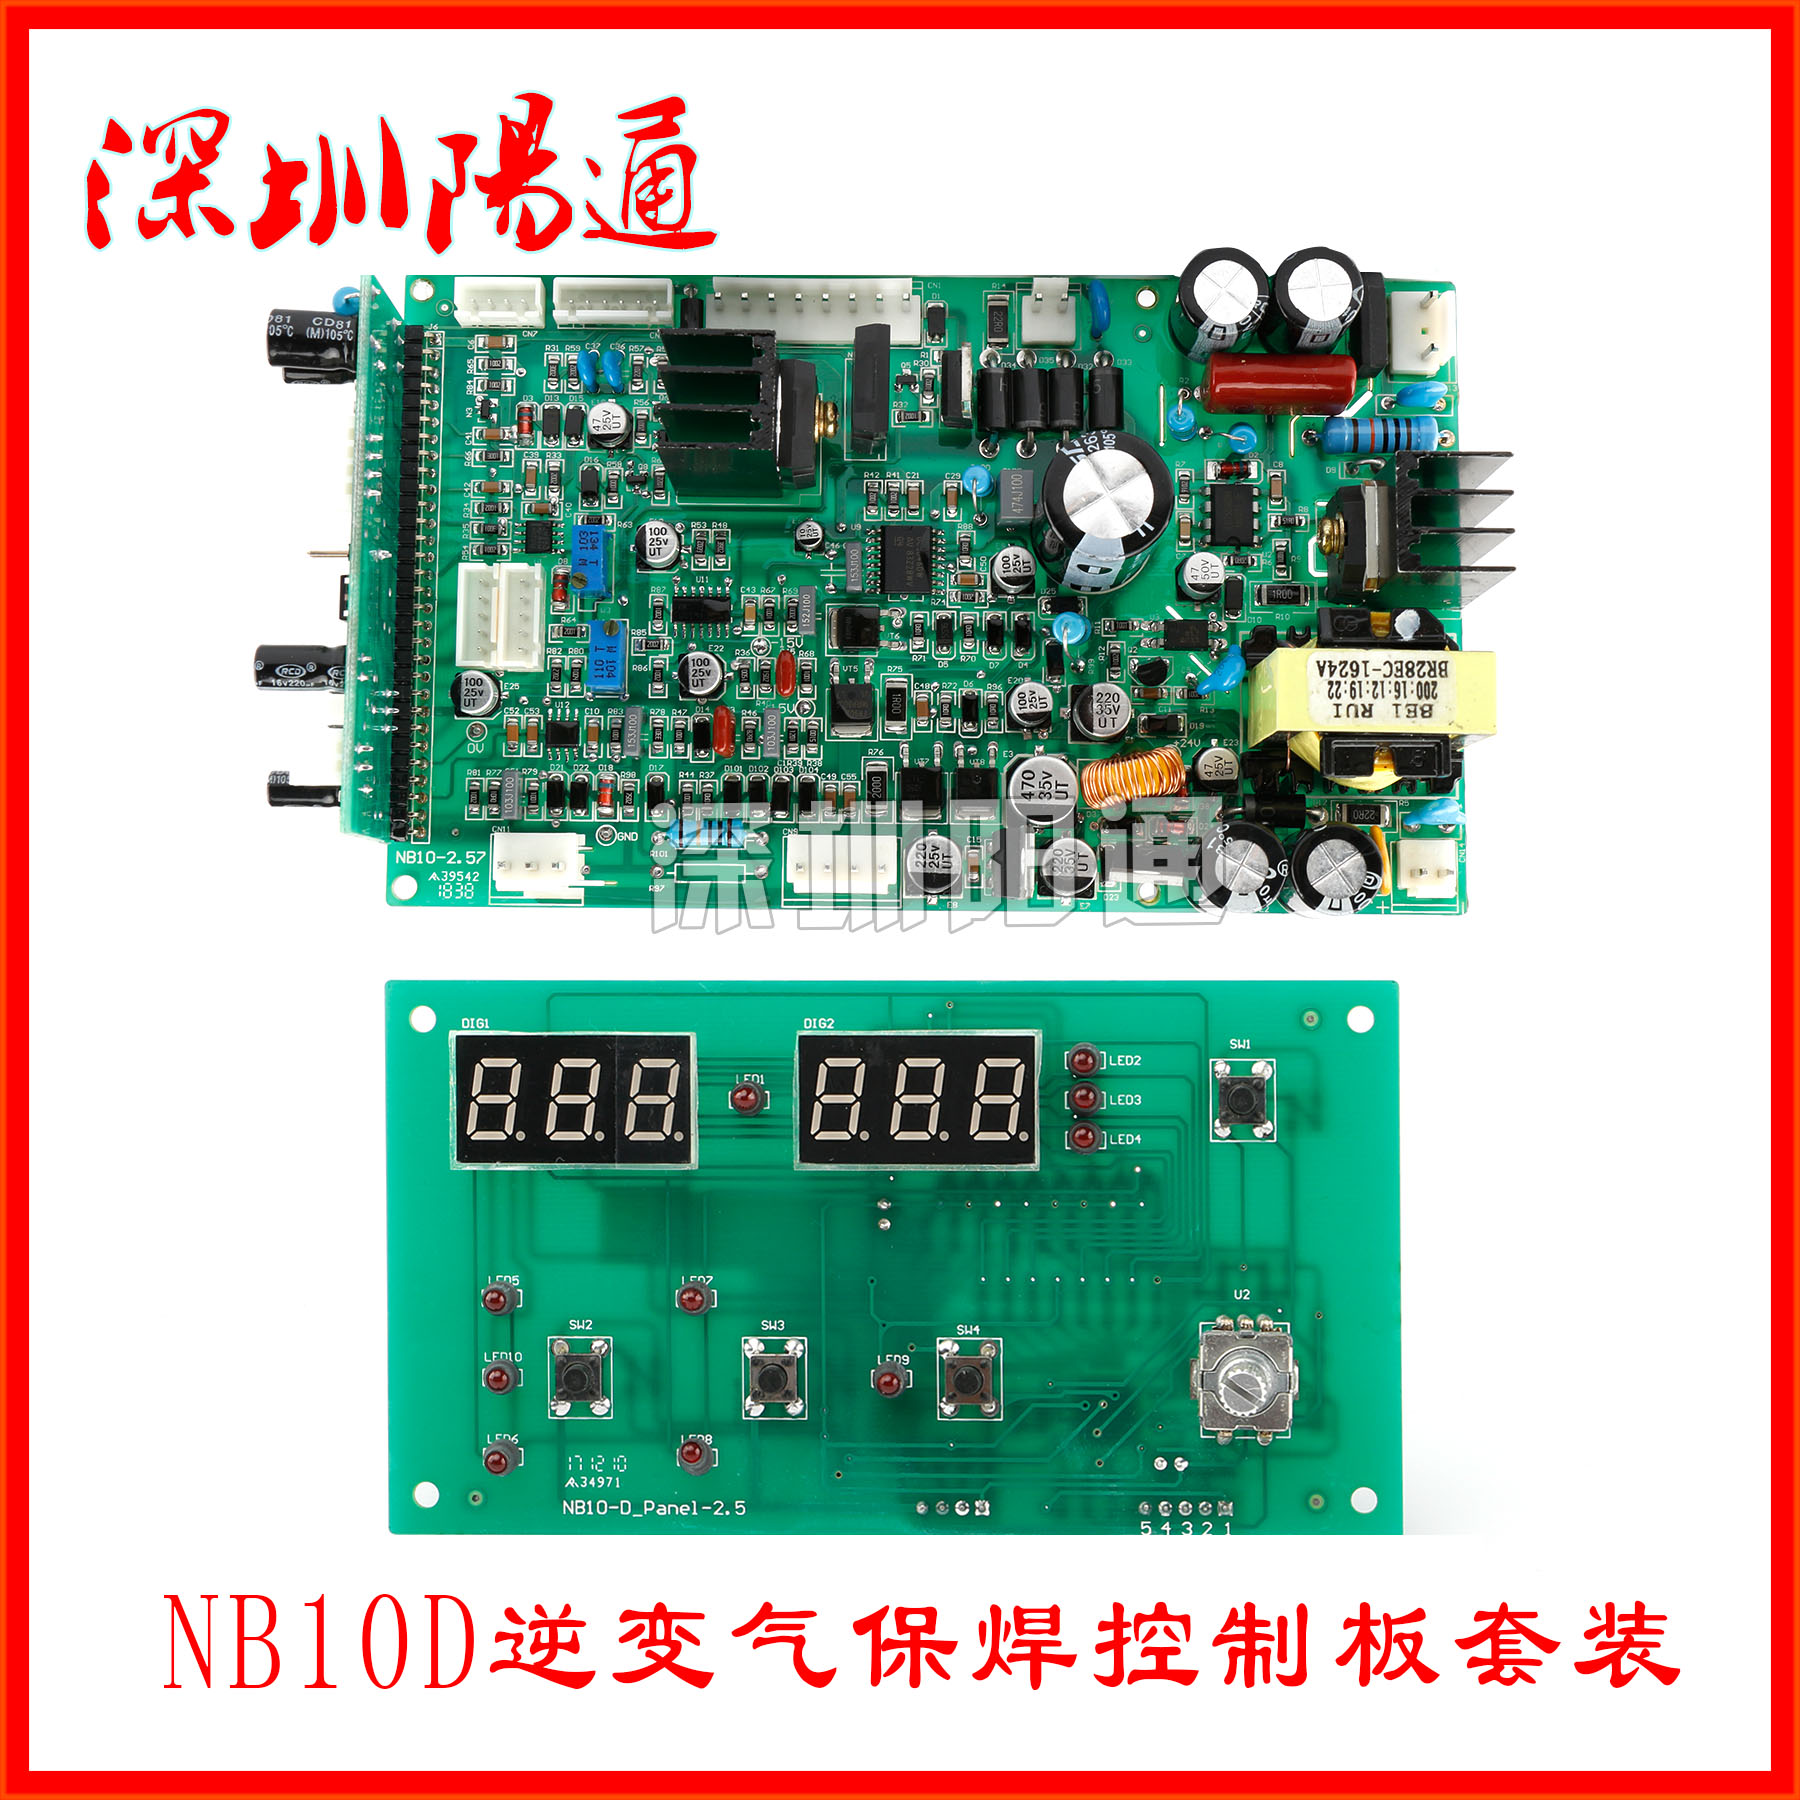 Power Tool Accessories Nbc250 315 Mos Inverter Carbon Dioxide Gas Welder Control Panel Circuit Board Spare No Cost At Any Cost